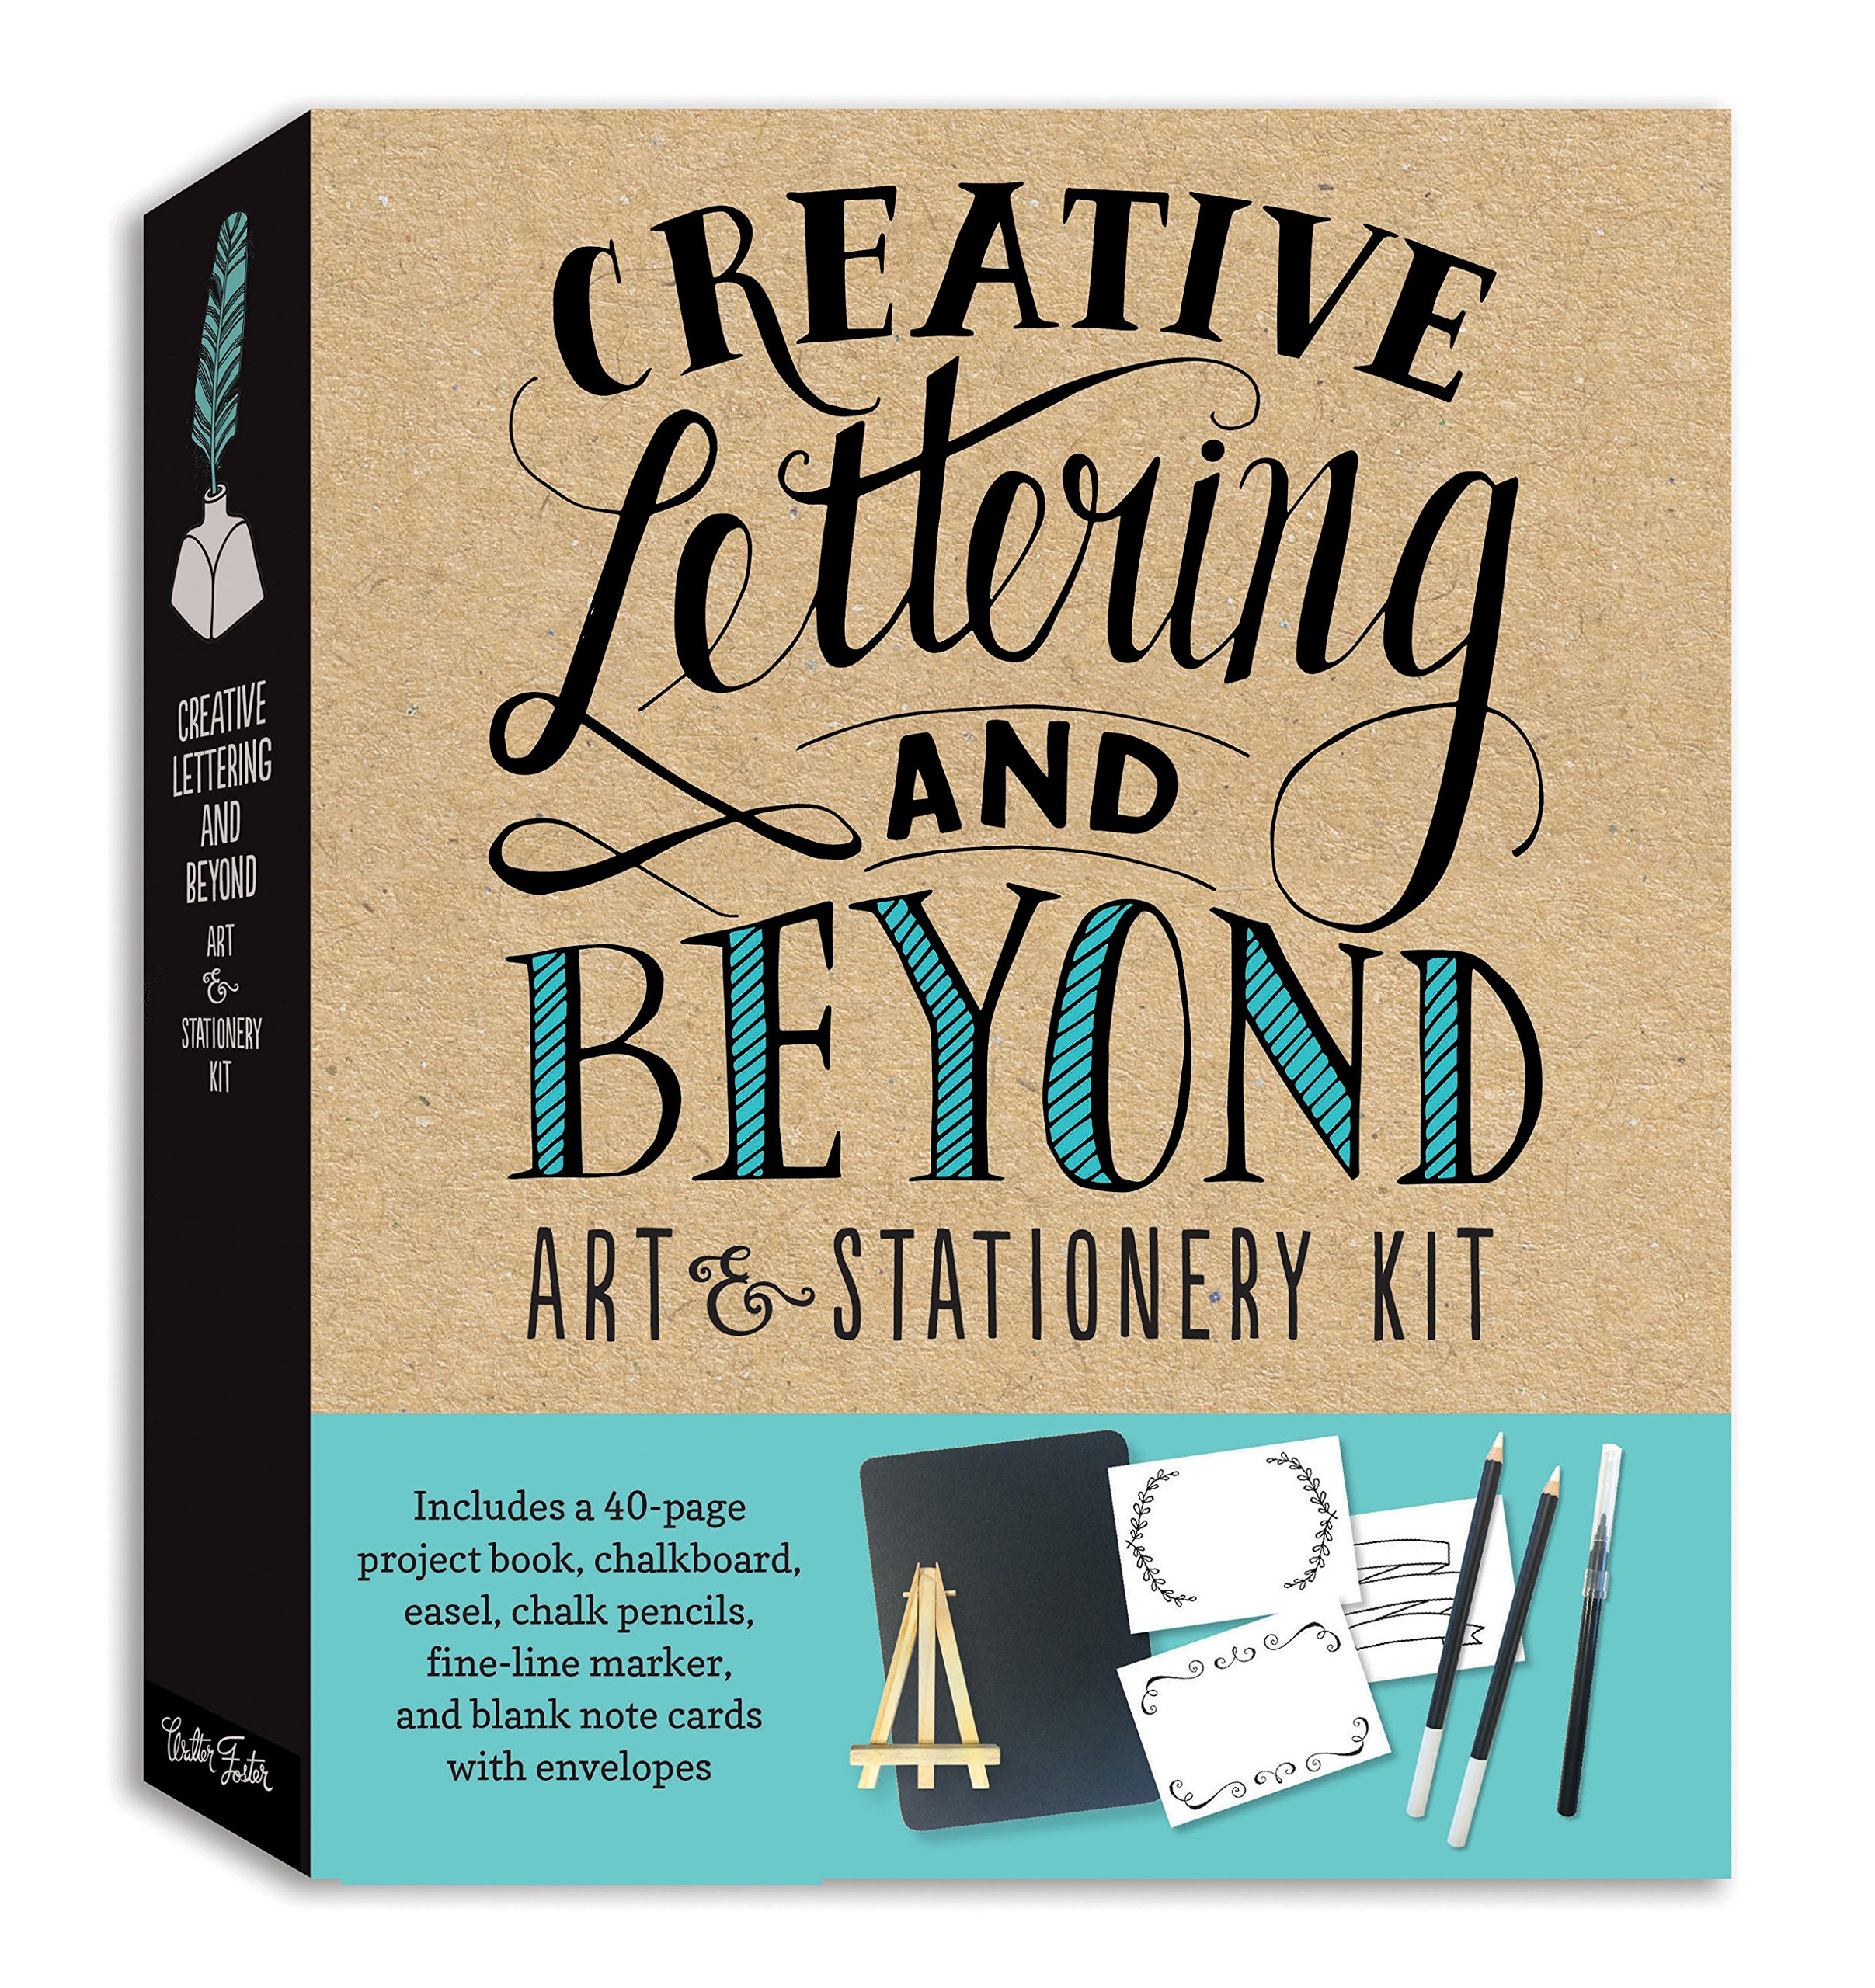 Creative Lettering and Beyond Art & Stationery Kit: Includes ...